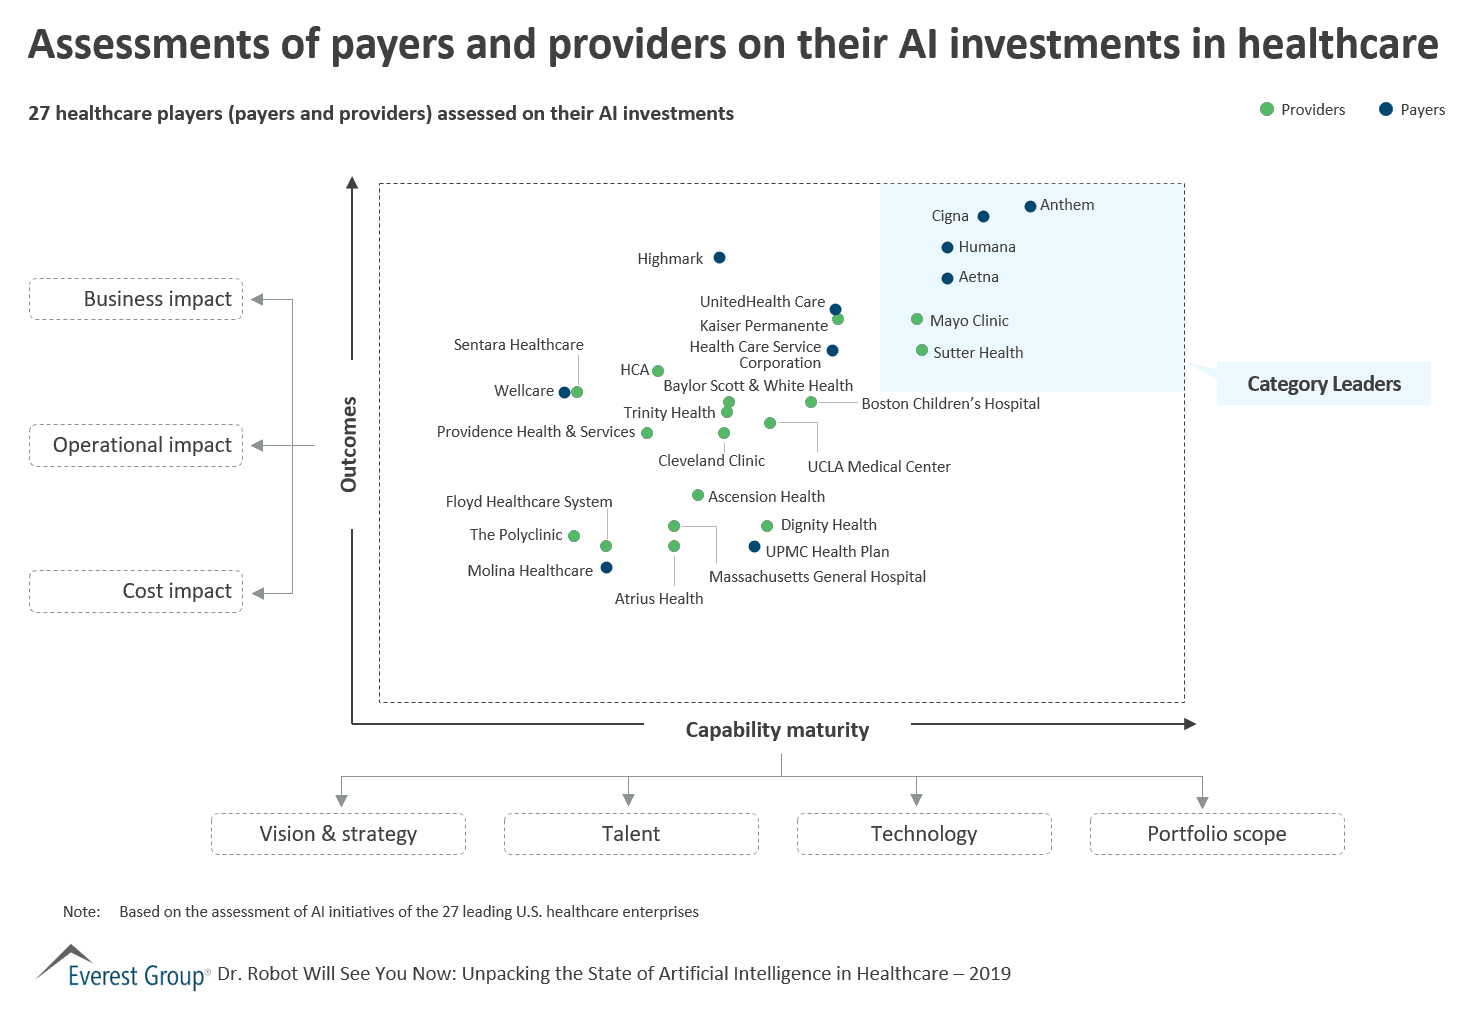 Assessments of payers and providers on their AI investments in healthcare